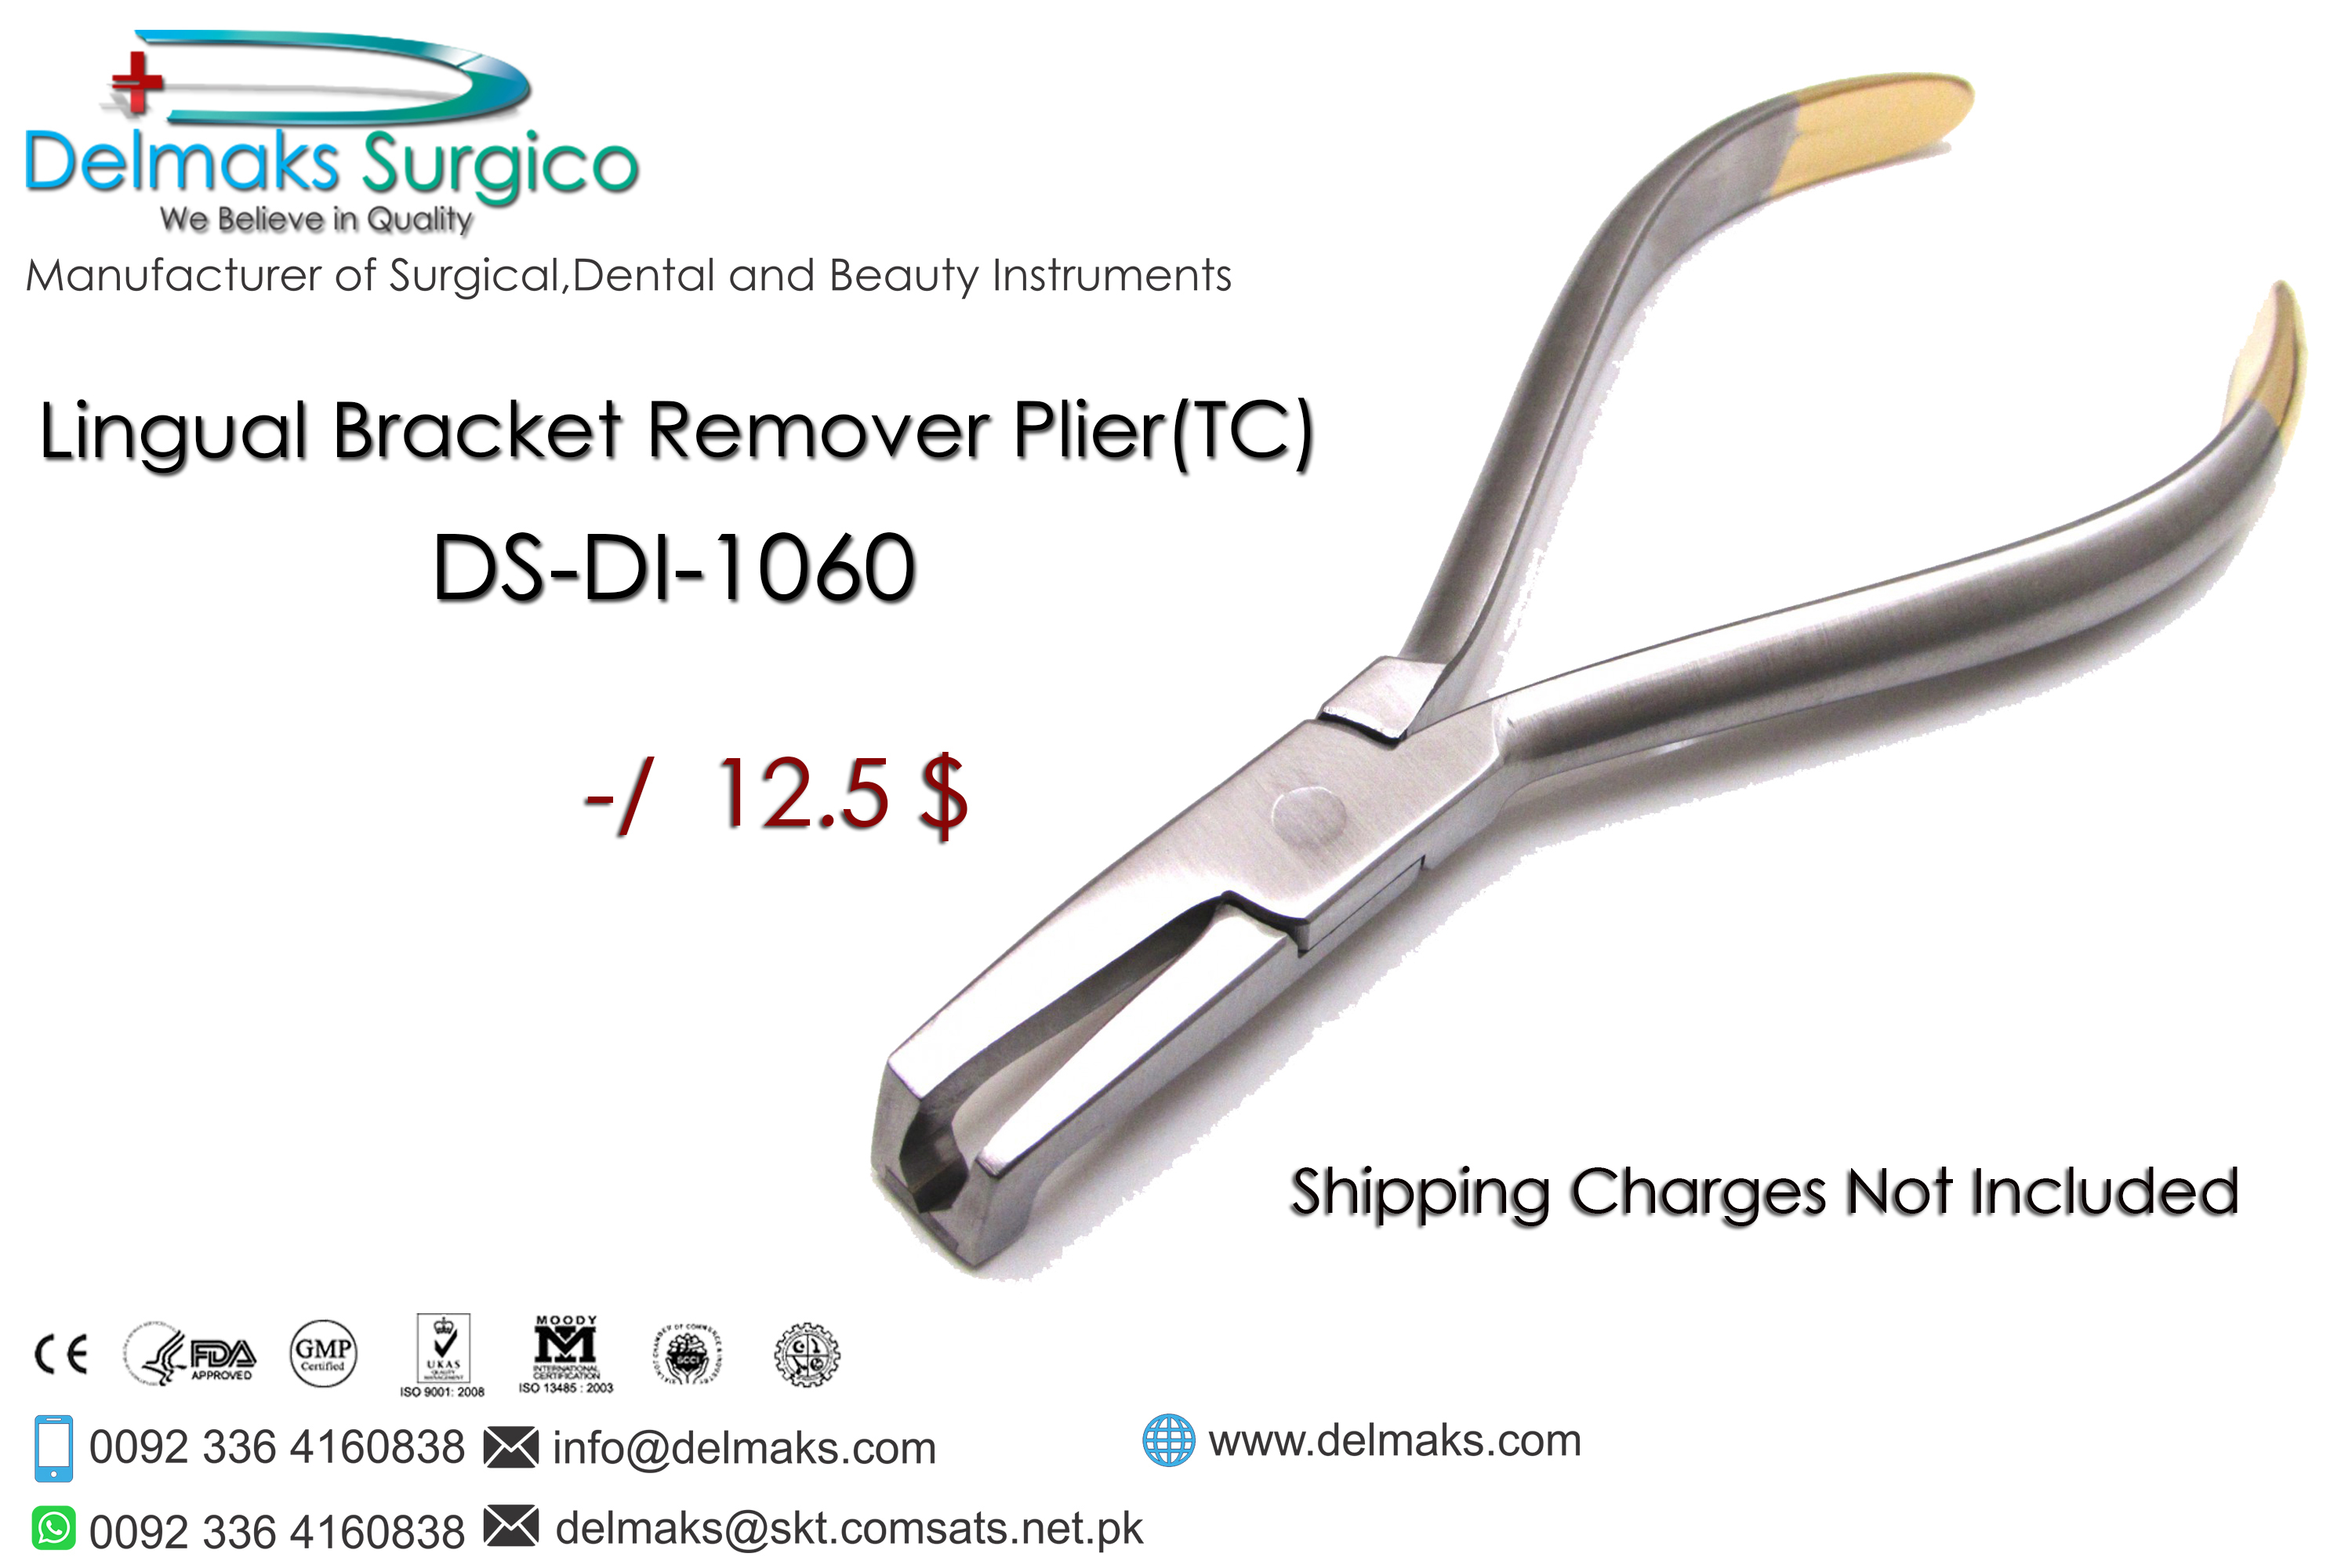 Lingual Bracket Remover Plier(TC)-Orthodontic Pliers-Orthodontic Instruments-Dental Instruments-Delmaks Surgico